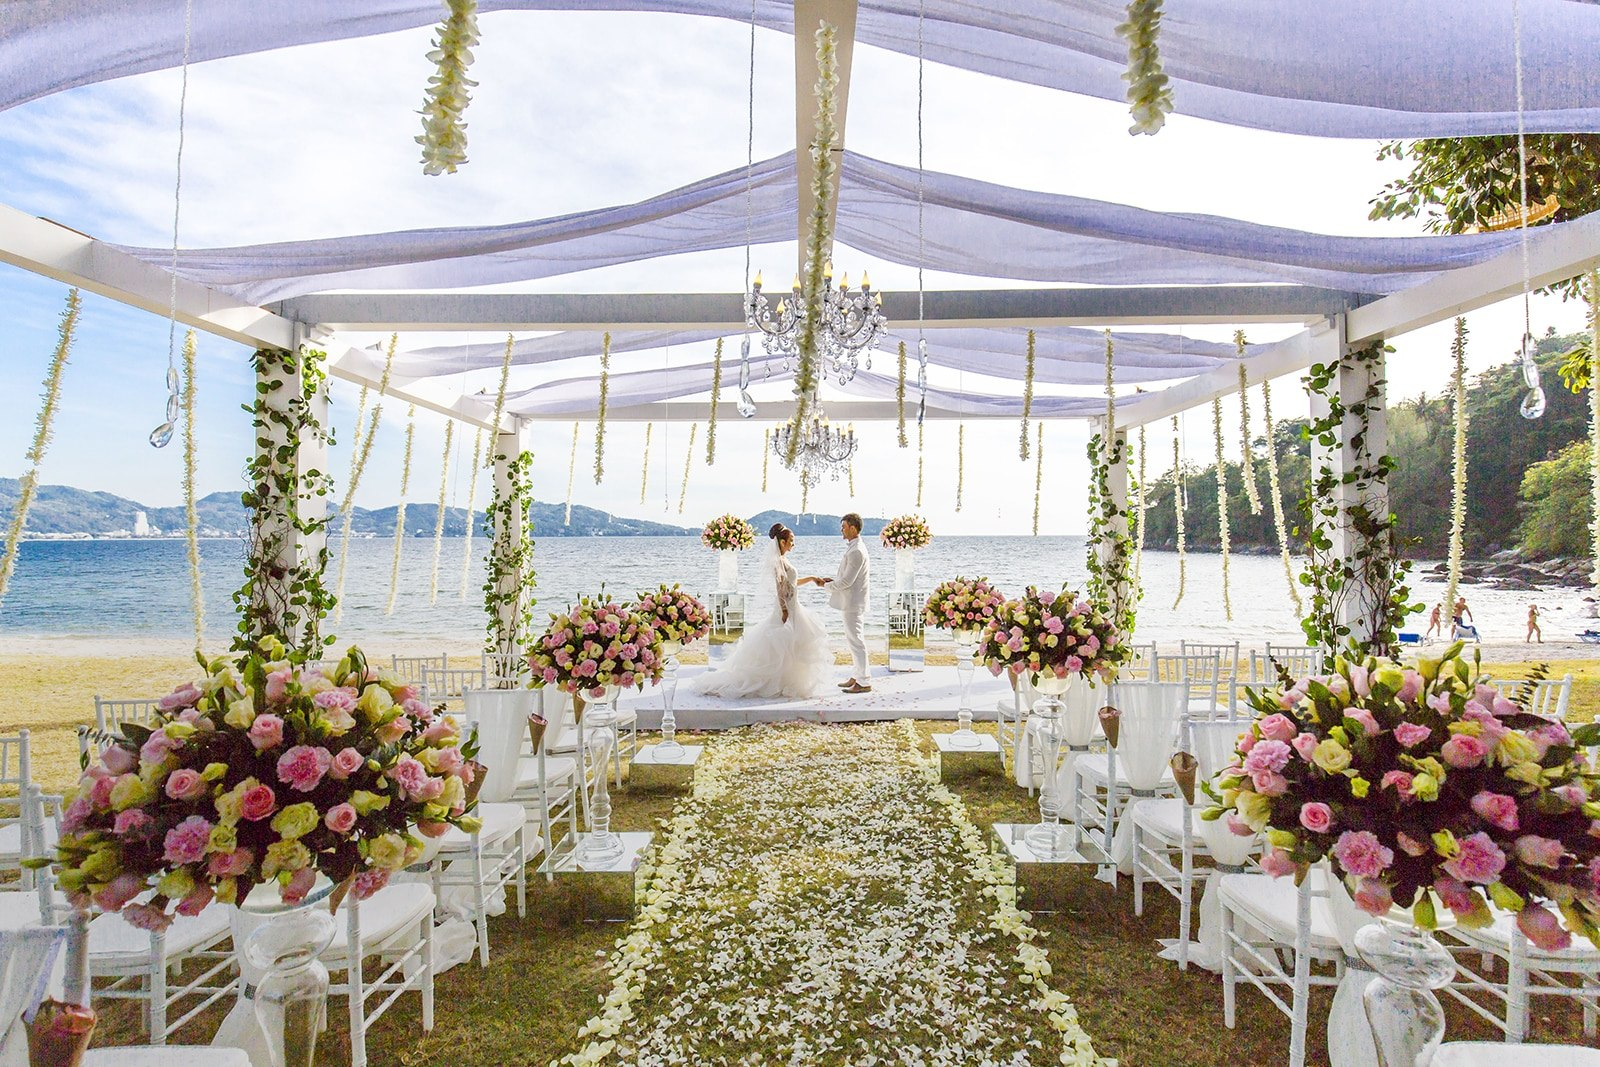 Dream Beach Weddings In Phuket | The Thaiger